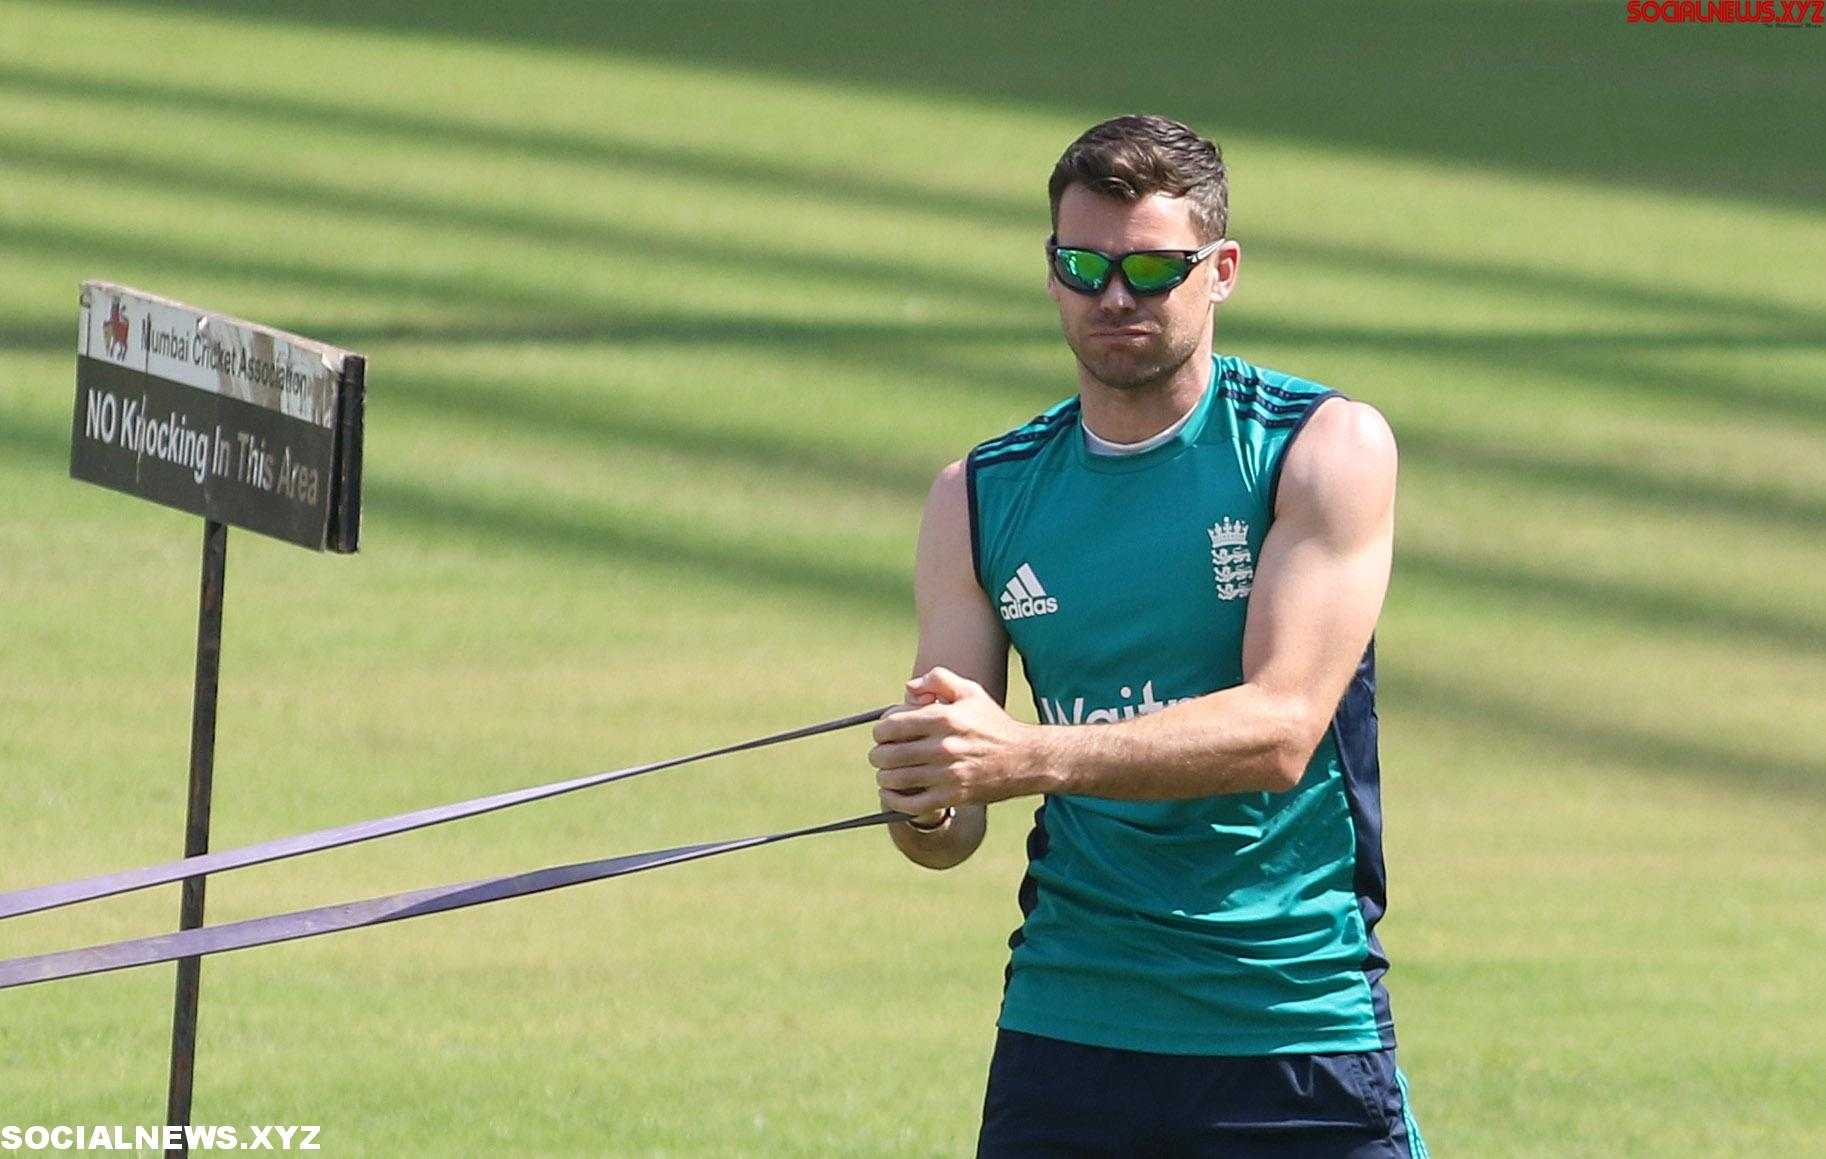 James Anderson to train at Man City to recover from injury